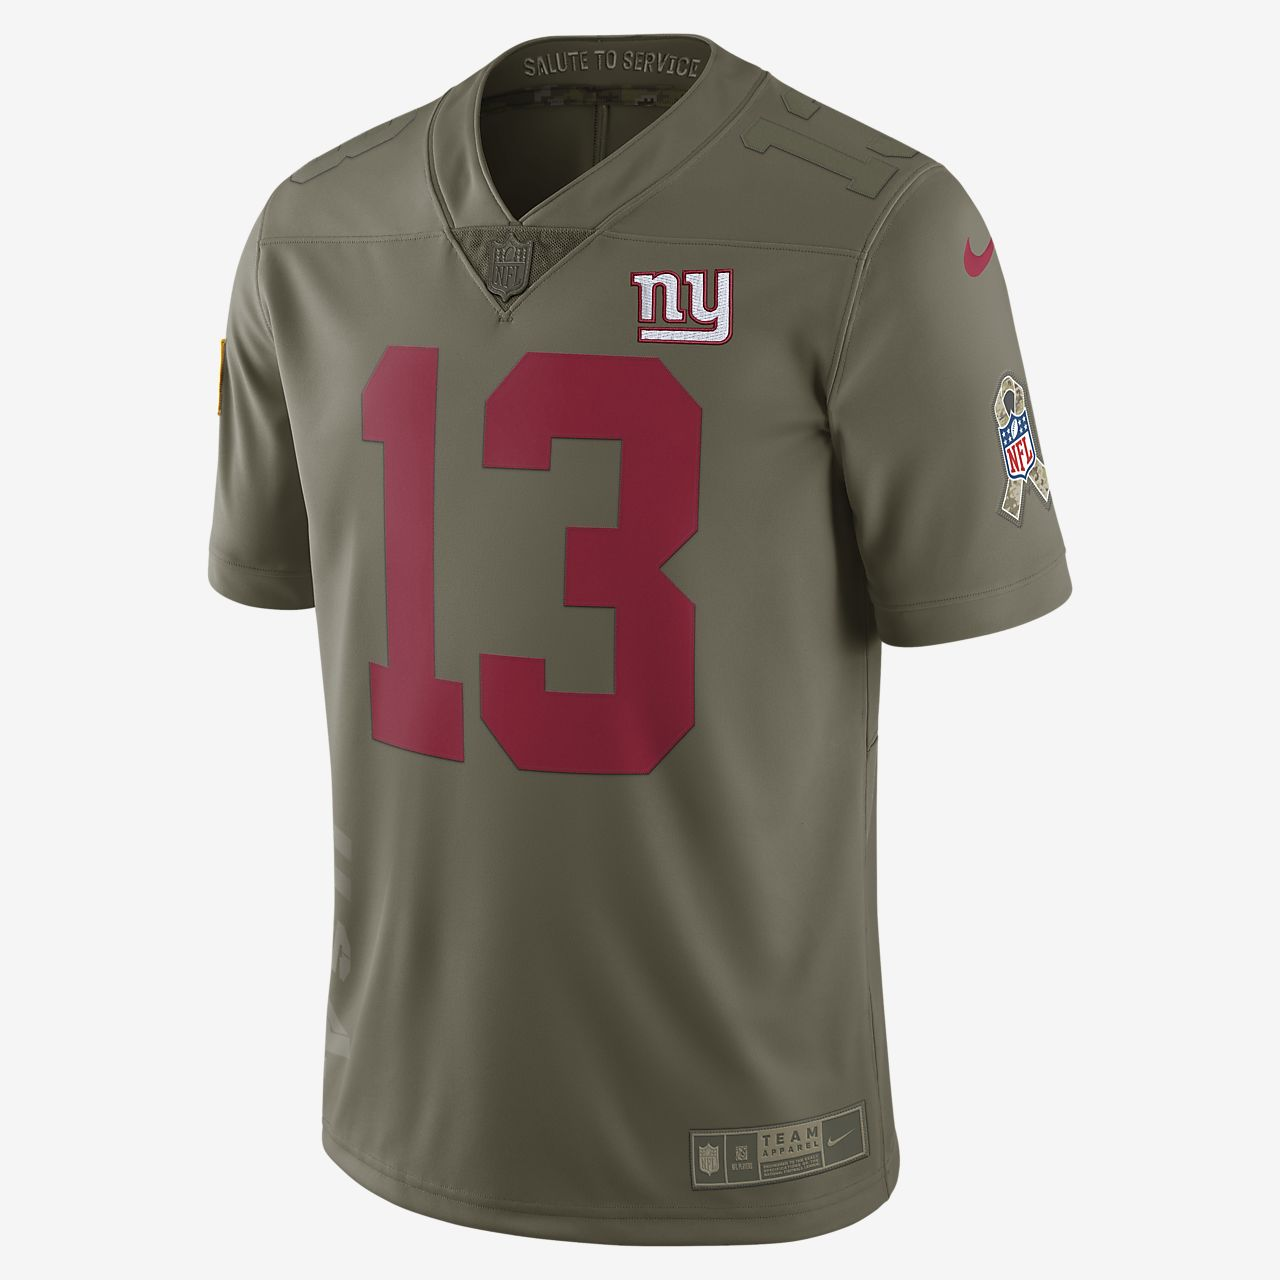 ... NFL Giants Limited STS (Odell Beckham Jr.) Men's Football Jersey